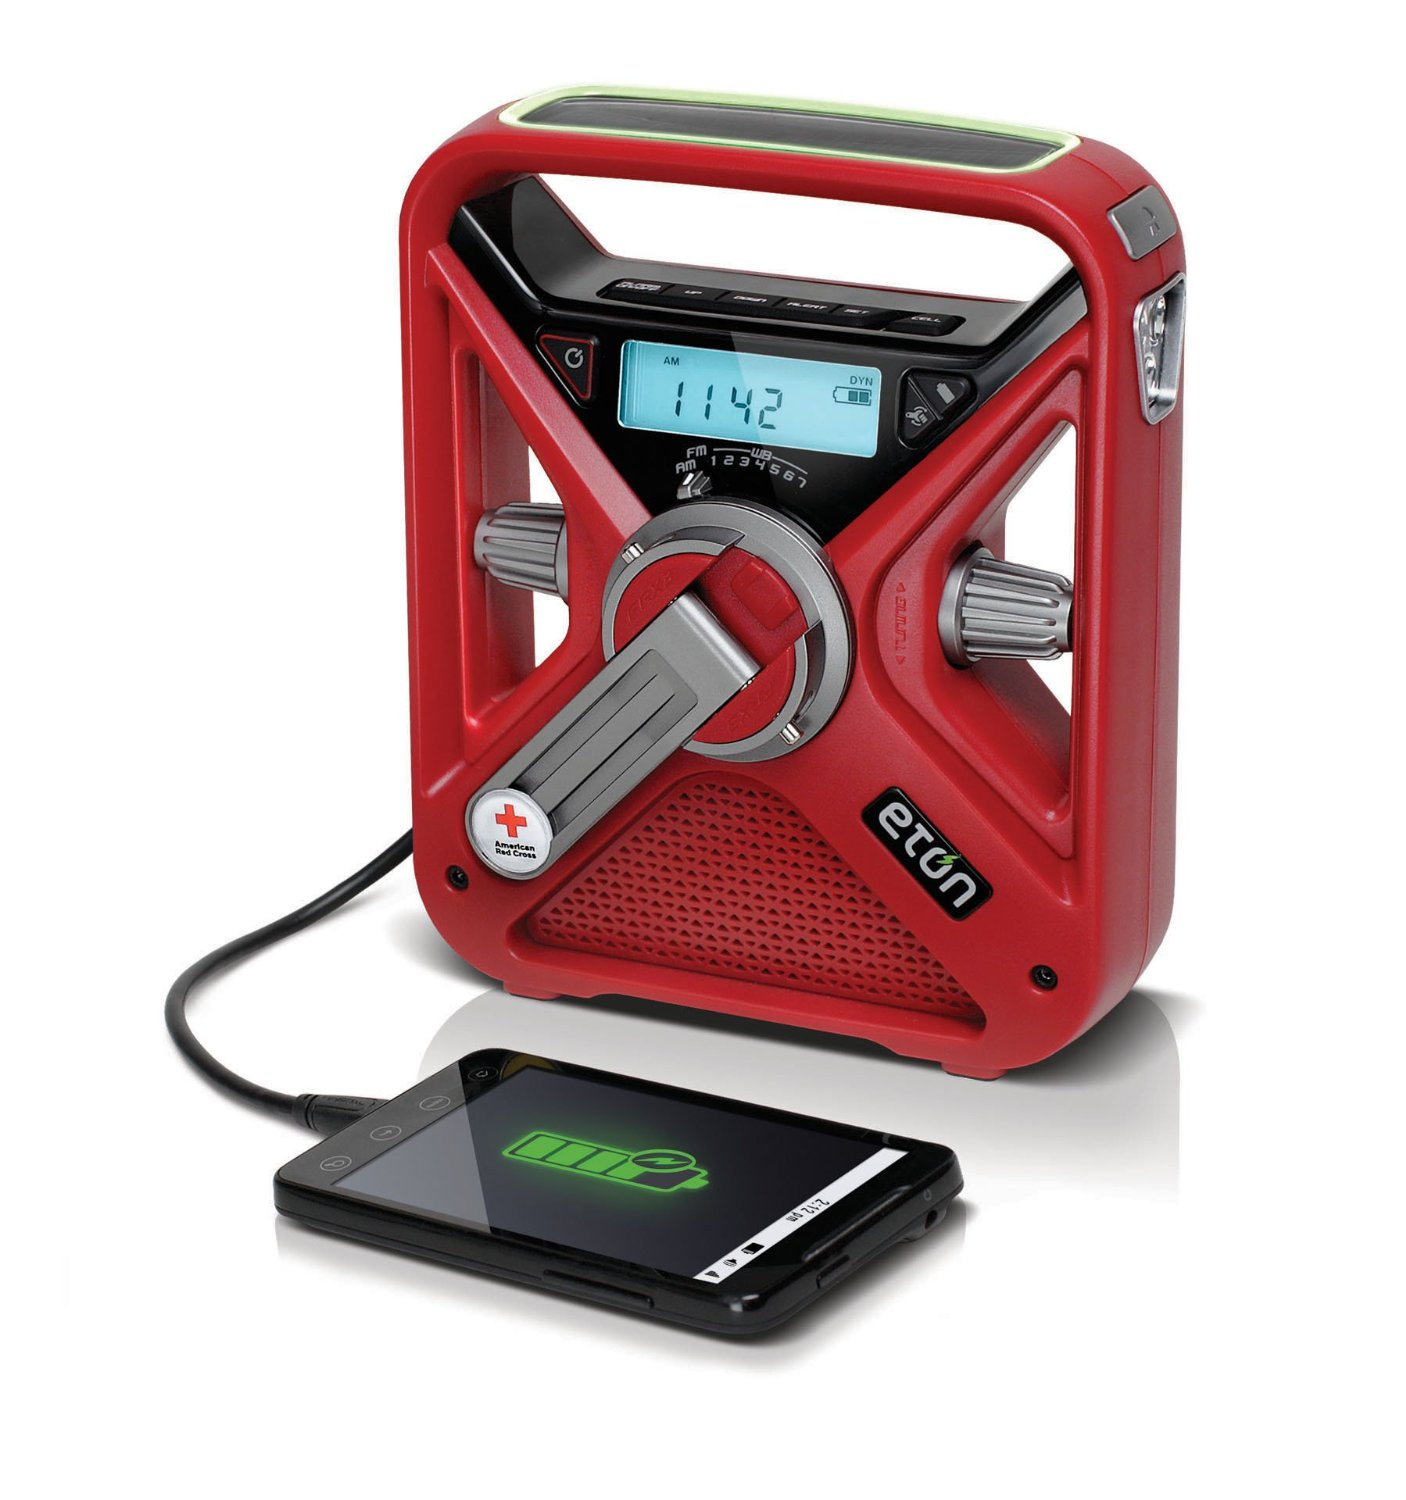 Red Cross FRX3 Crank Radio, $70    This amazing little unit packs in an AM/FM radio, weather alerts, LED flashlight and beacon, aux input, and can charge your smartphone. Charges via rechargeable battery, hand crank, solar power or AAA batteries. Impressive!  Eton